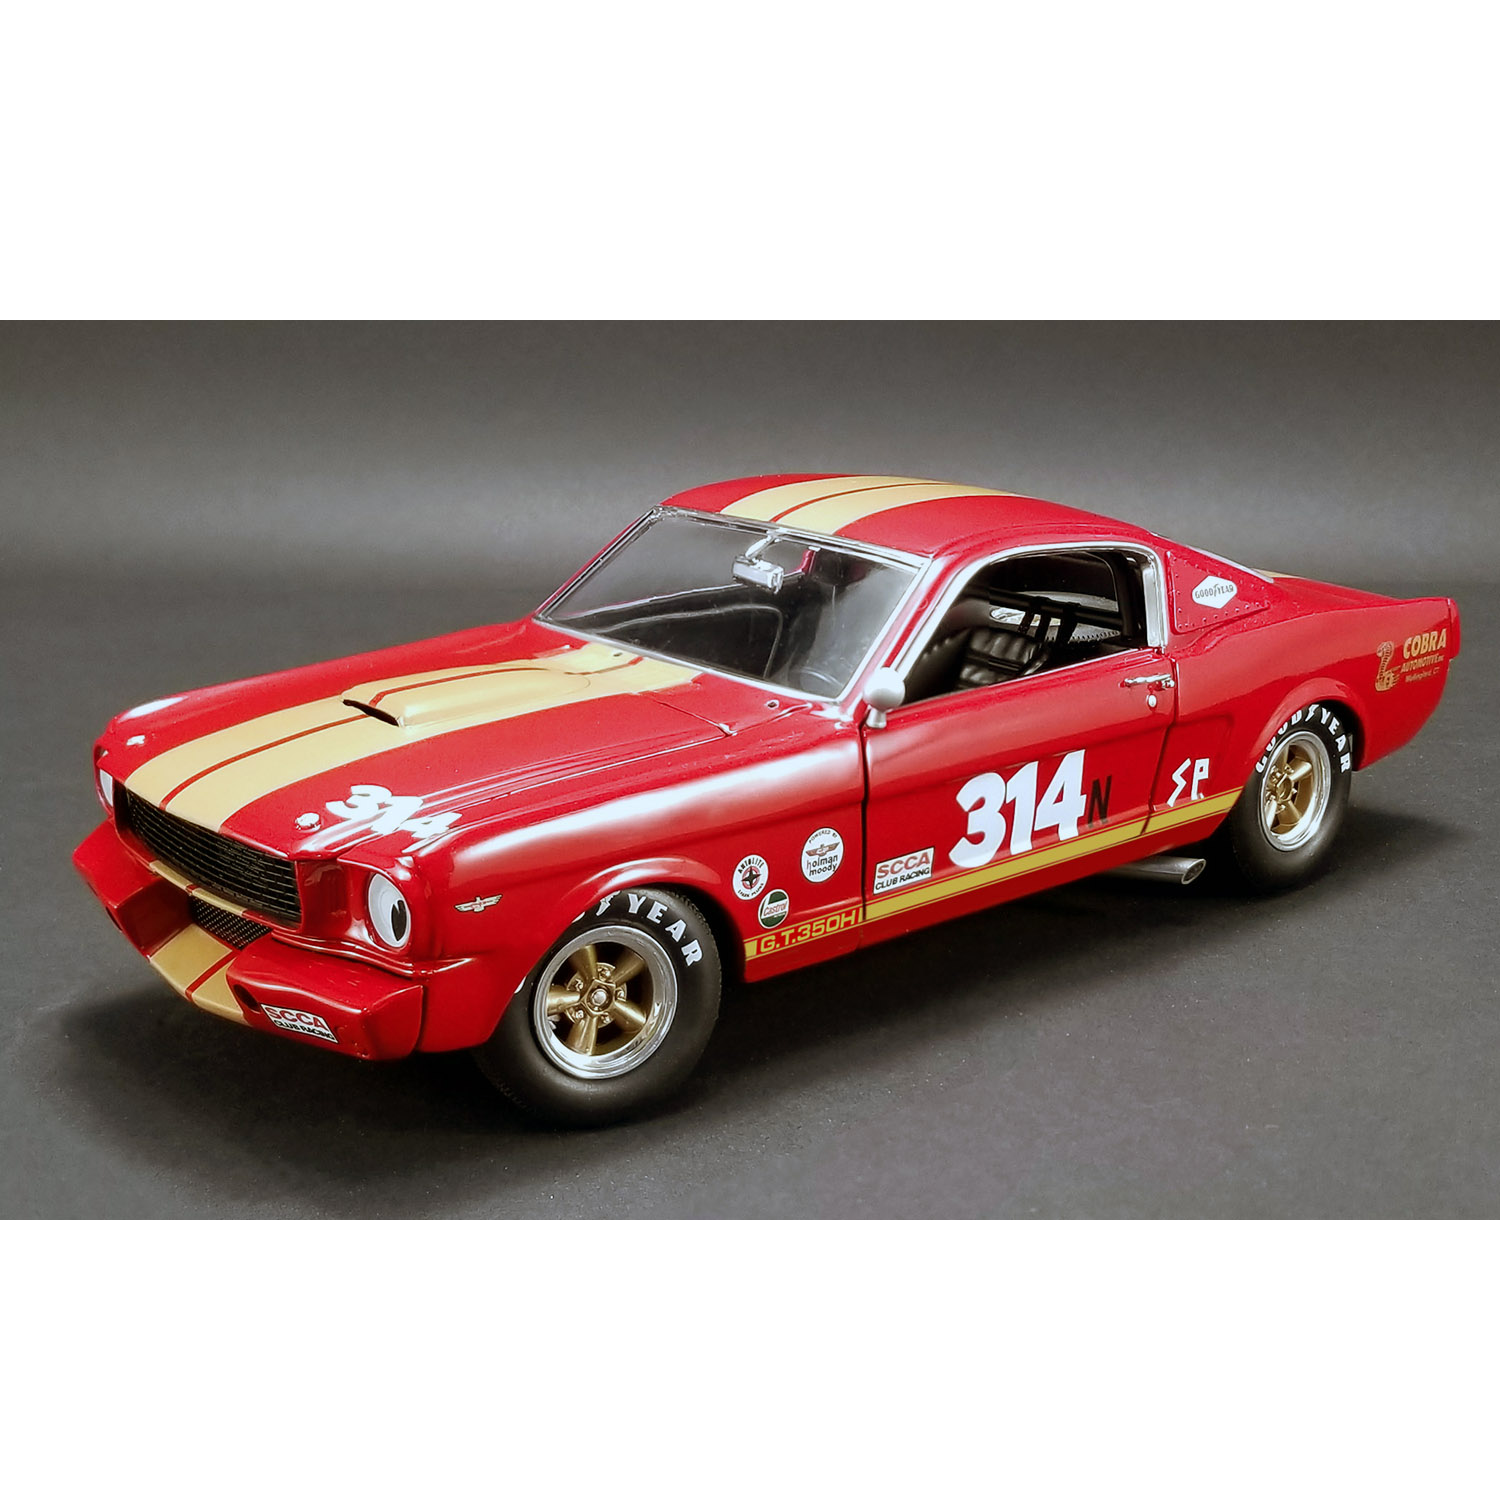 ACME – 1/18 Scale – #314 1966 Shelby GT350H – Rent A Racer Model Replica